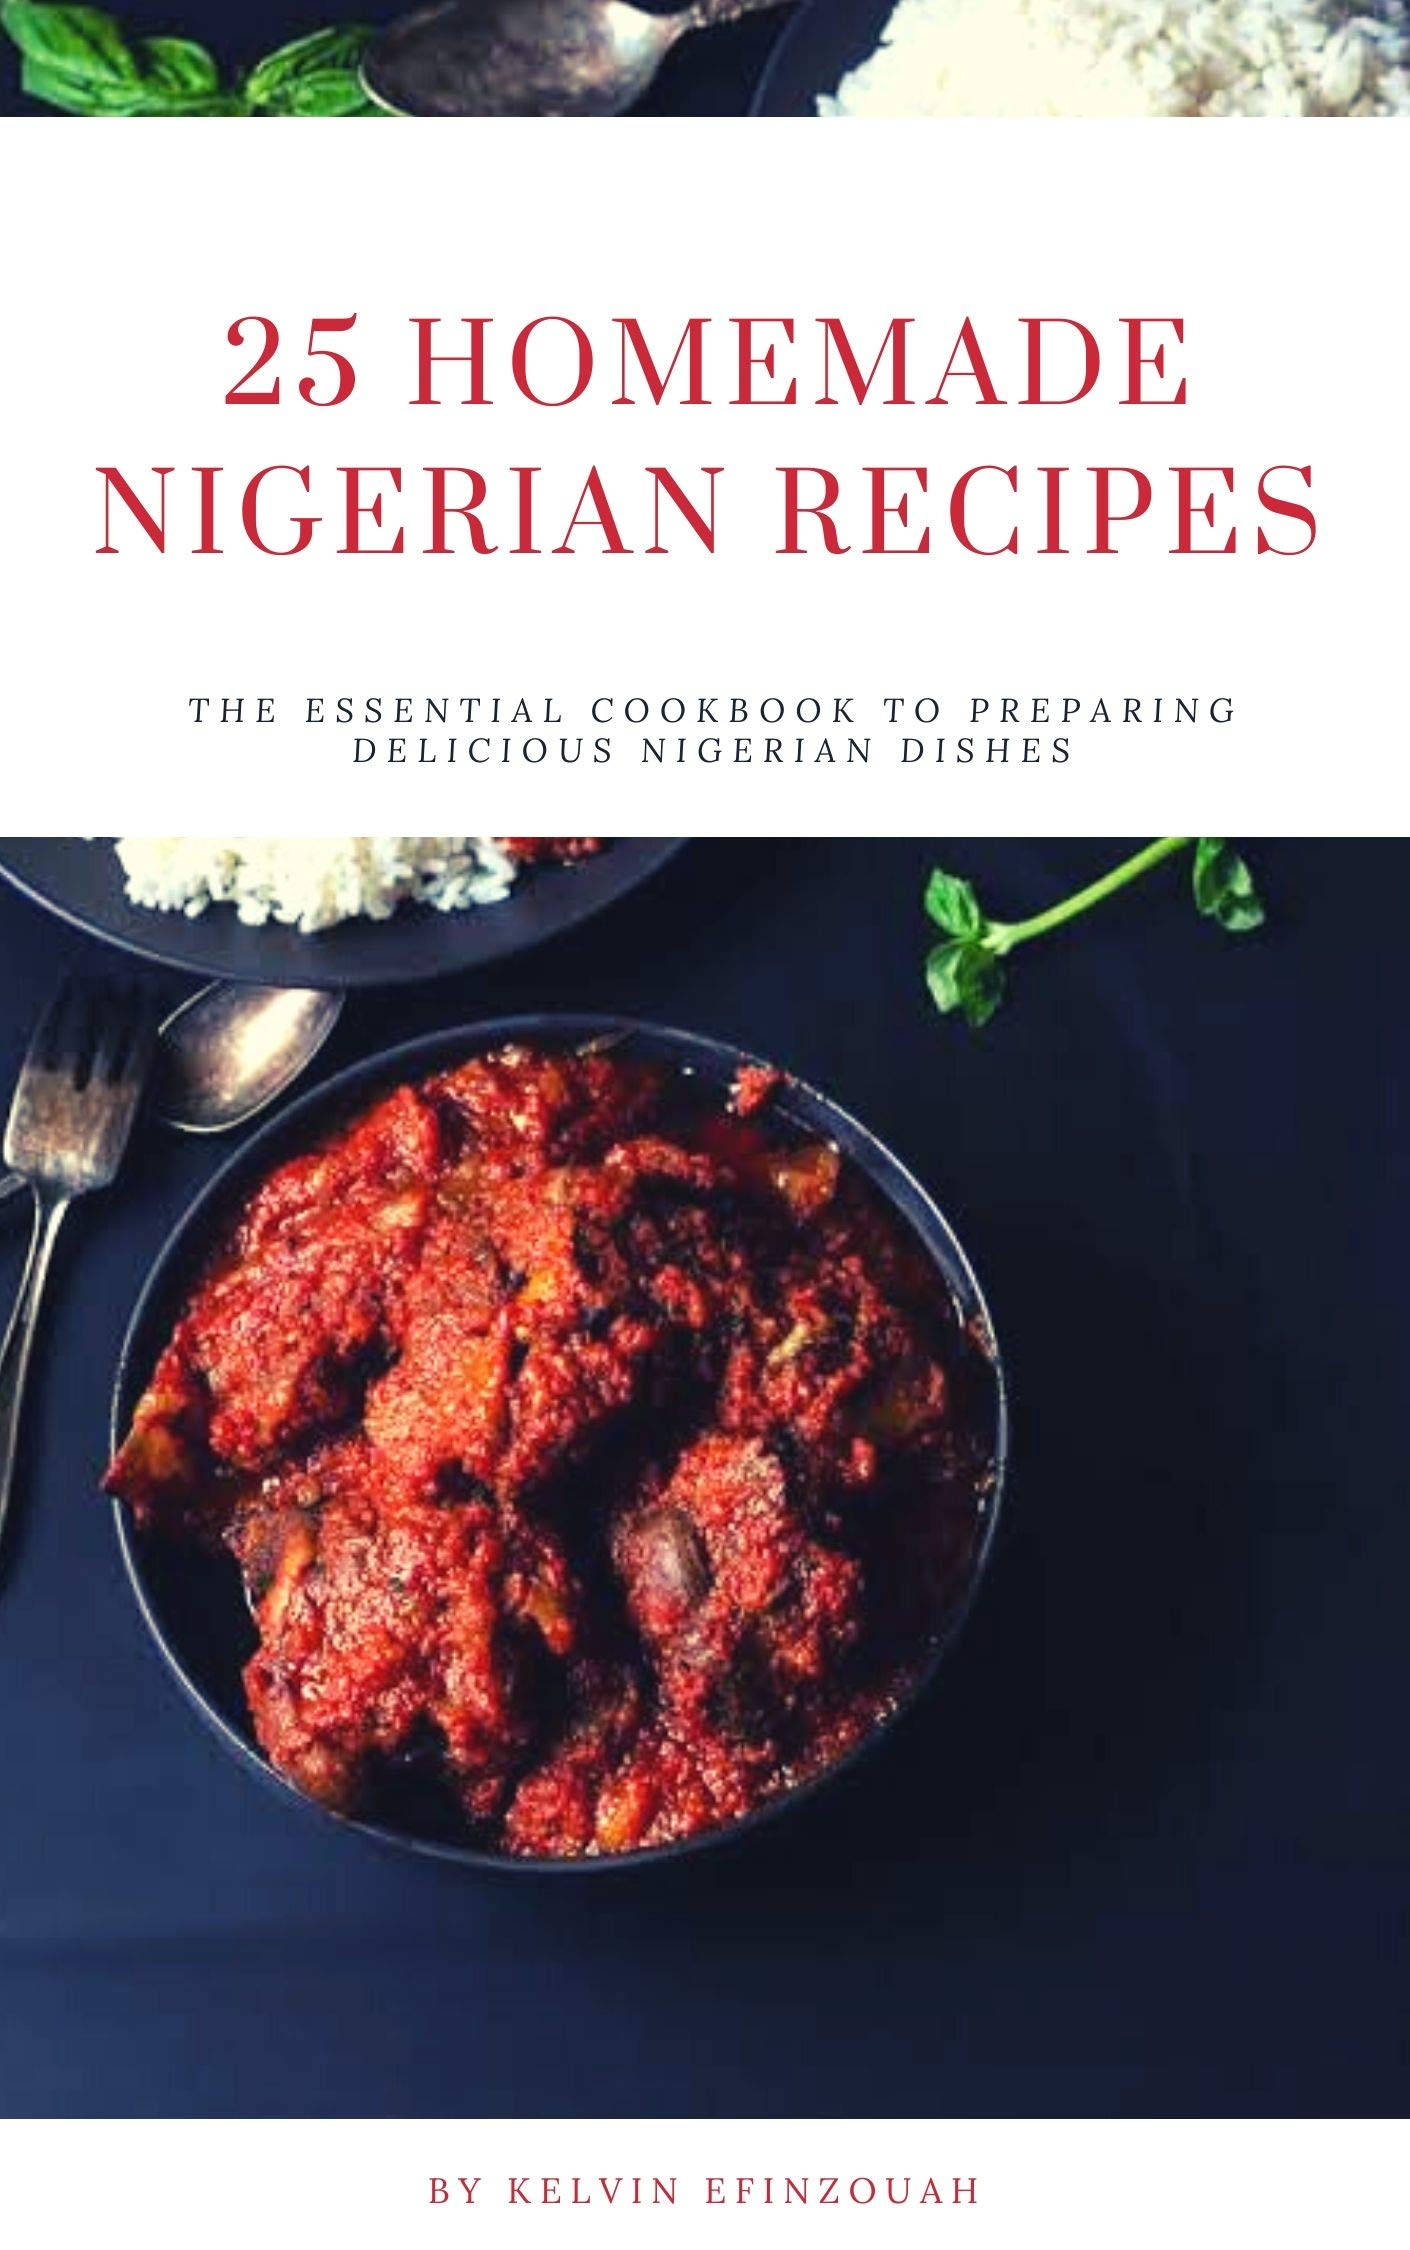 25 HOMEMADE NIGERIAN RECIPES  The Essential Cookbook To Preparing Delicious Nigerian Dishes  English Edition